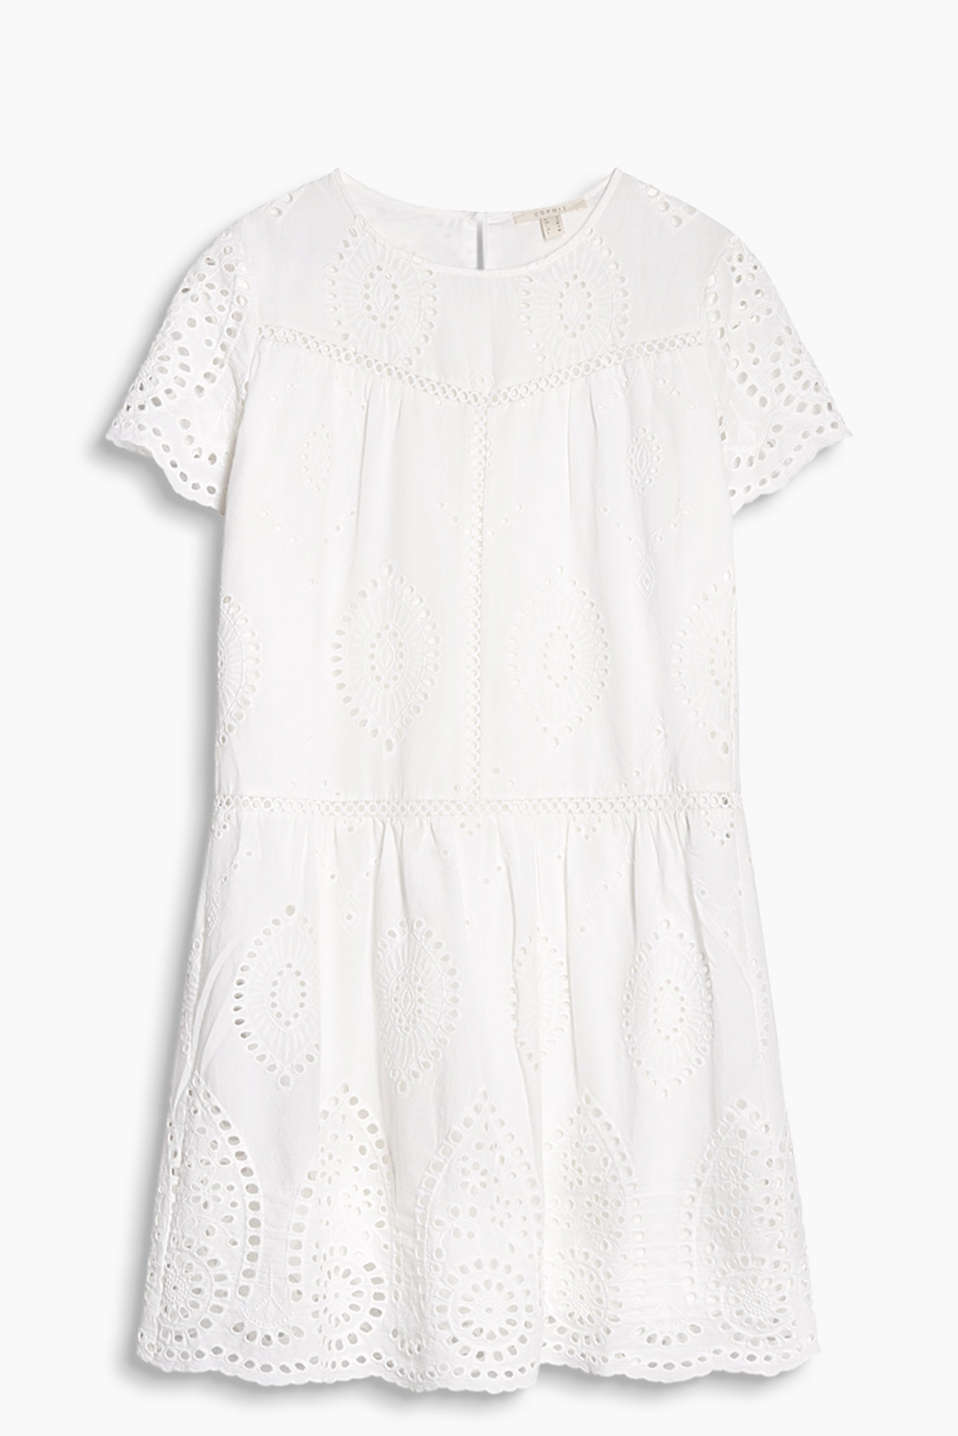 Robe vaporeuse à belle broderie anglaise, 100 % coton